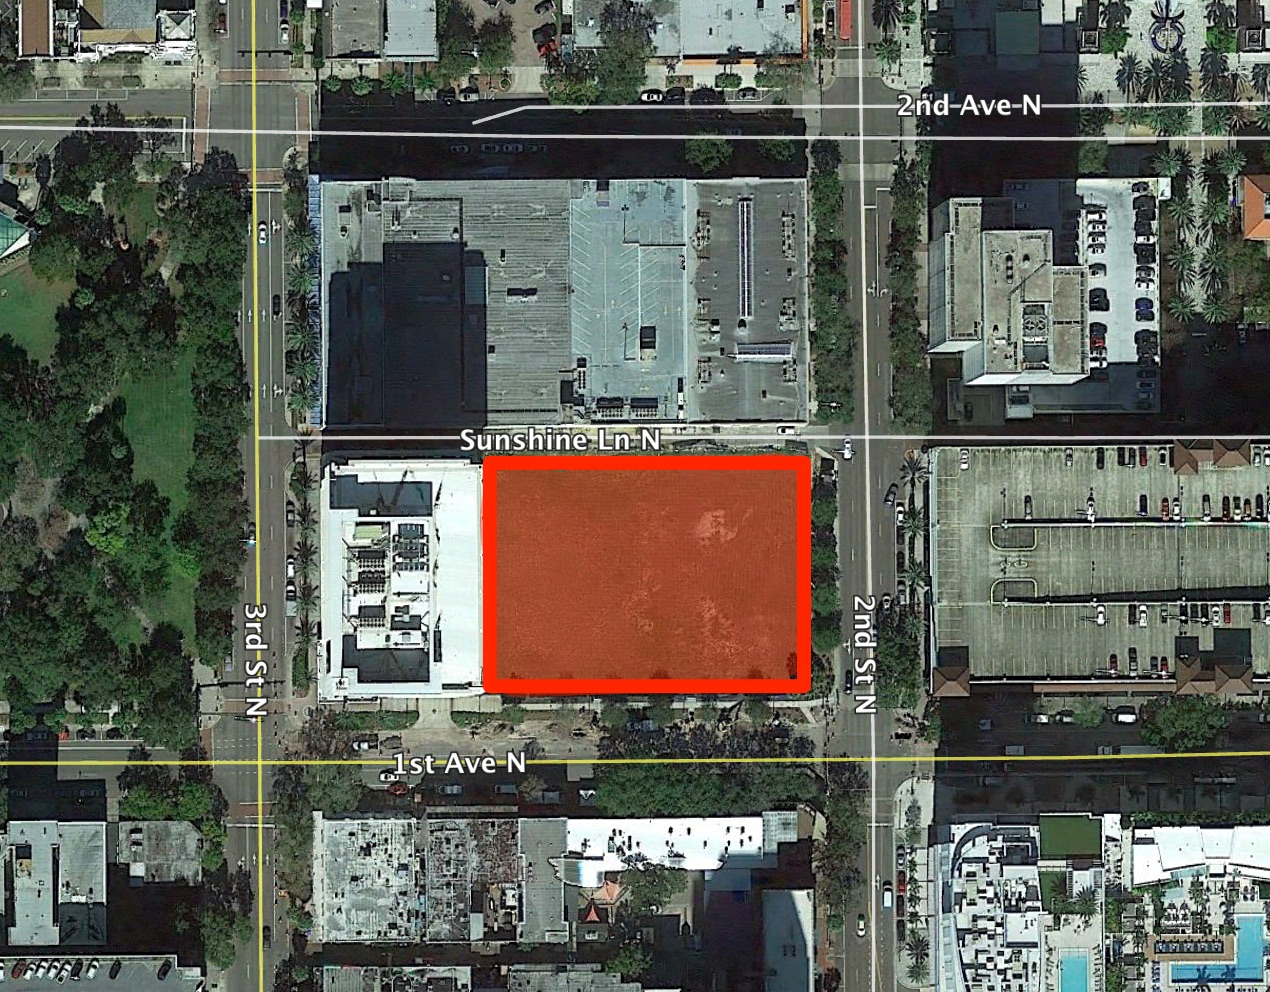 Ascent St Petersburg has been proposed for 225 1st Avenue North, the site of two previous development proposals, the Halcyon and the Grand Bohemian Hotel & Residences.